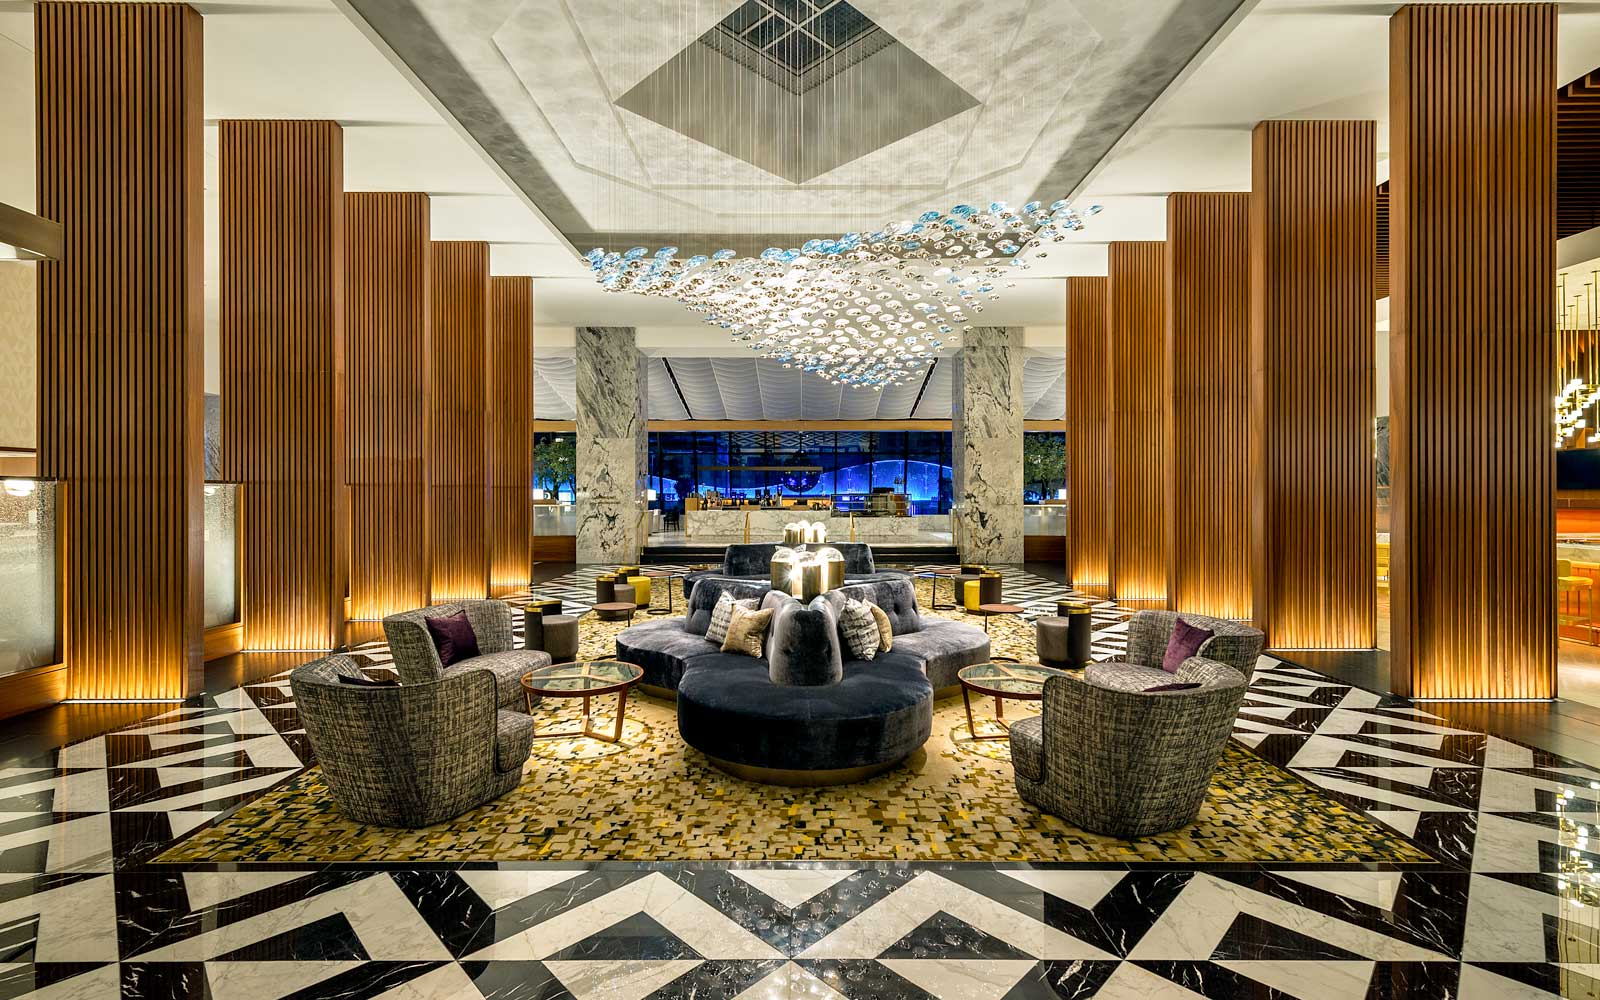 Lobby of The Ritz-Carlton, Chicago